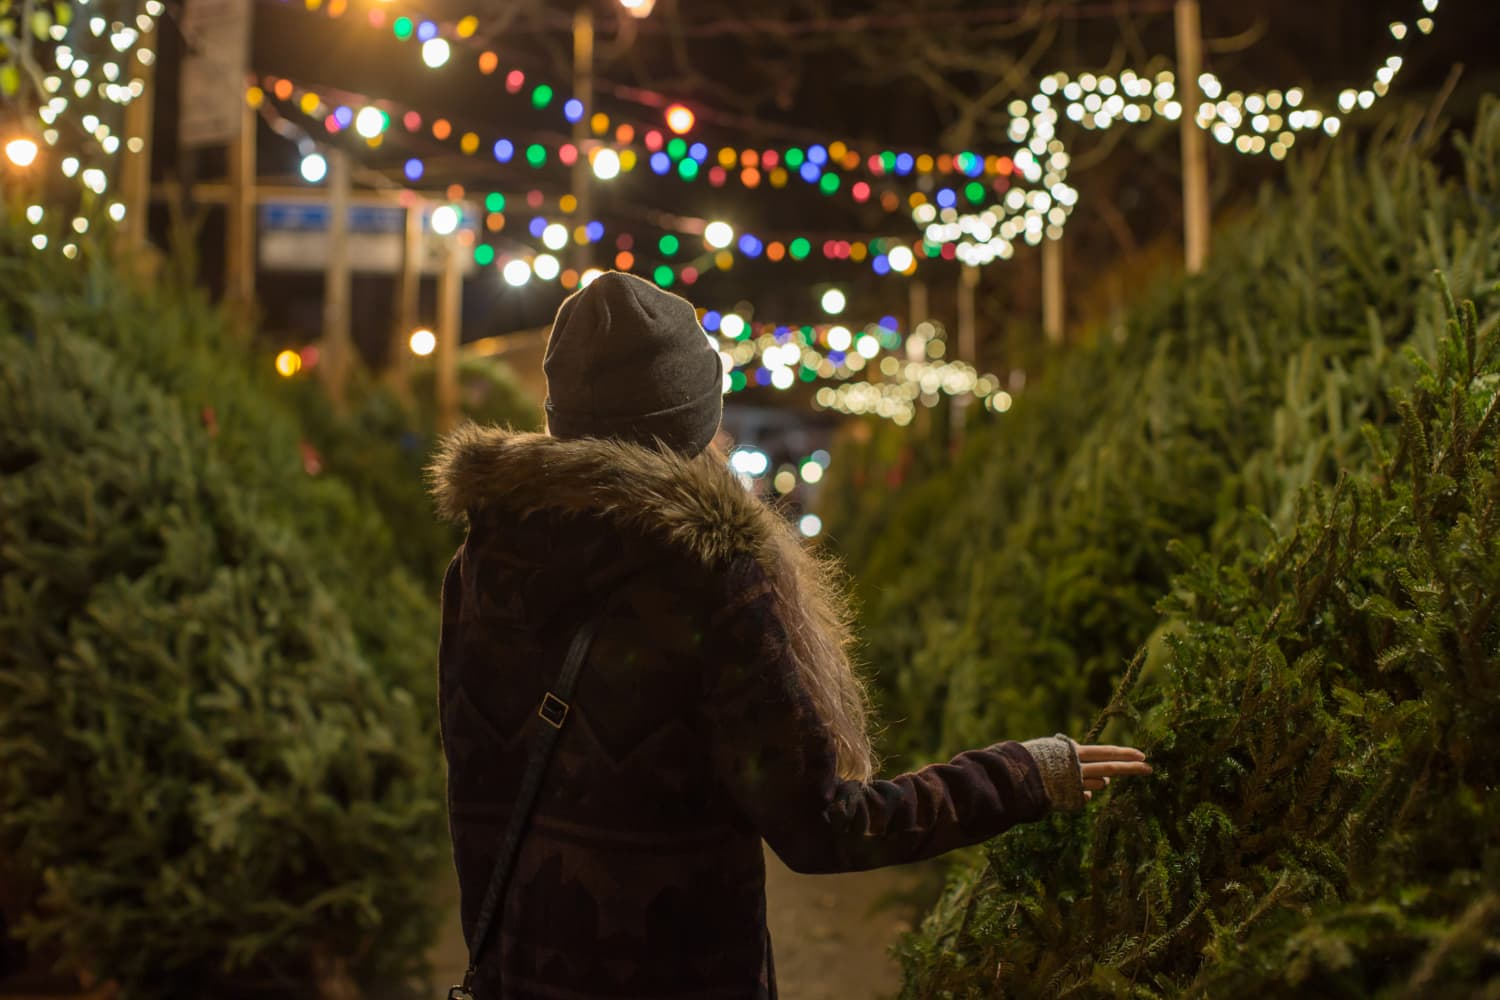 A Single Christmas Tree in New York City Can Cost As Much As $6,500